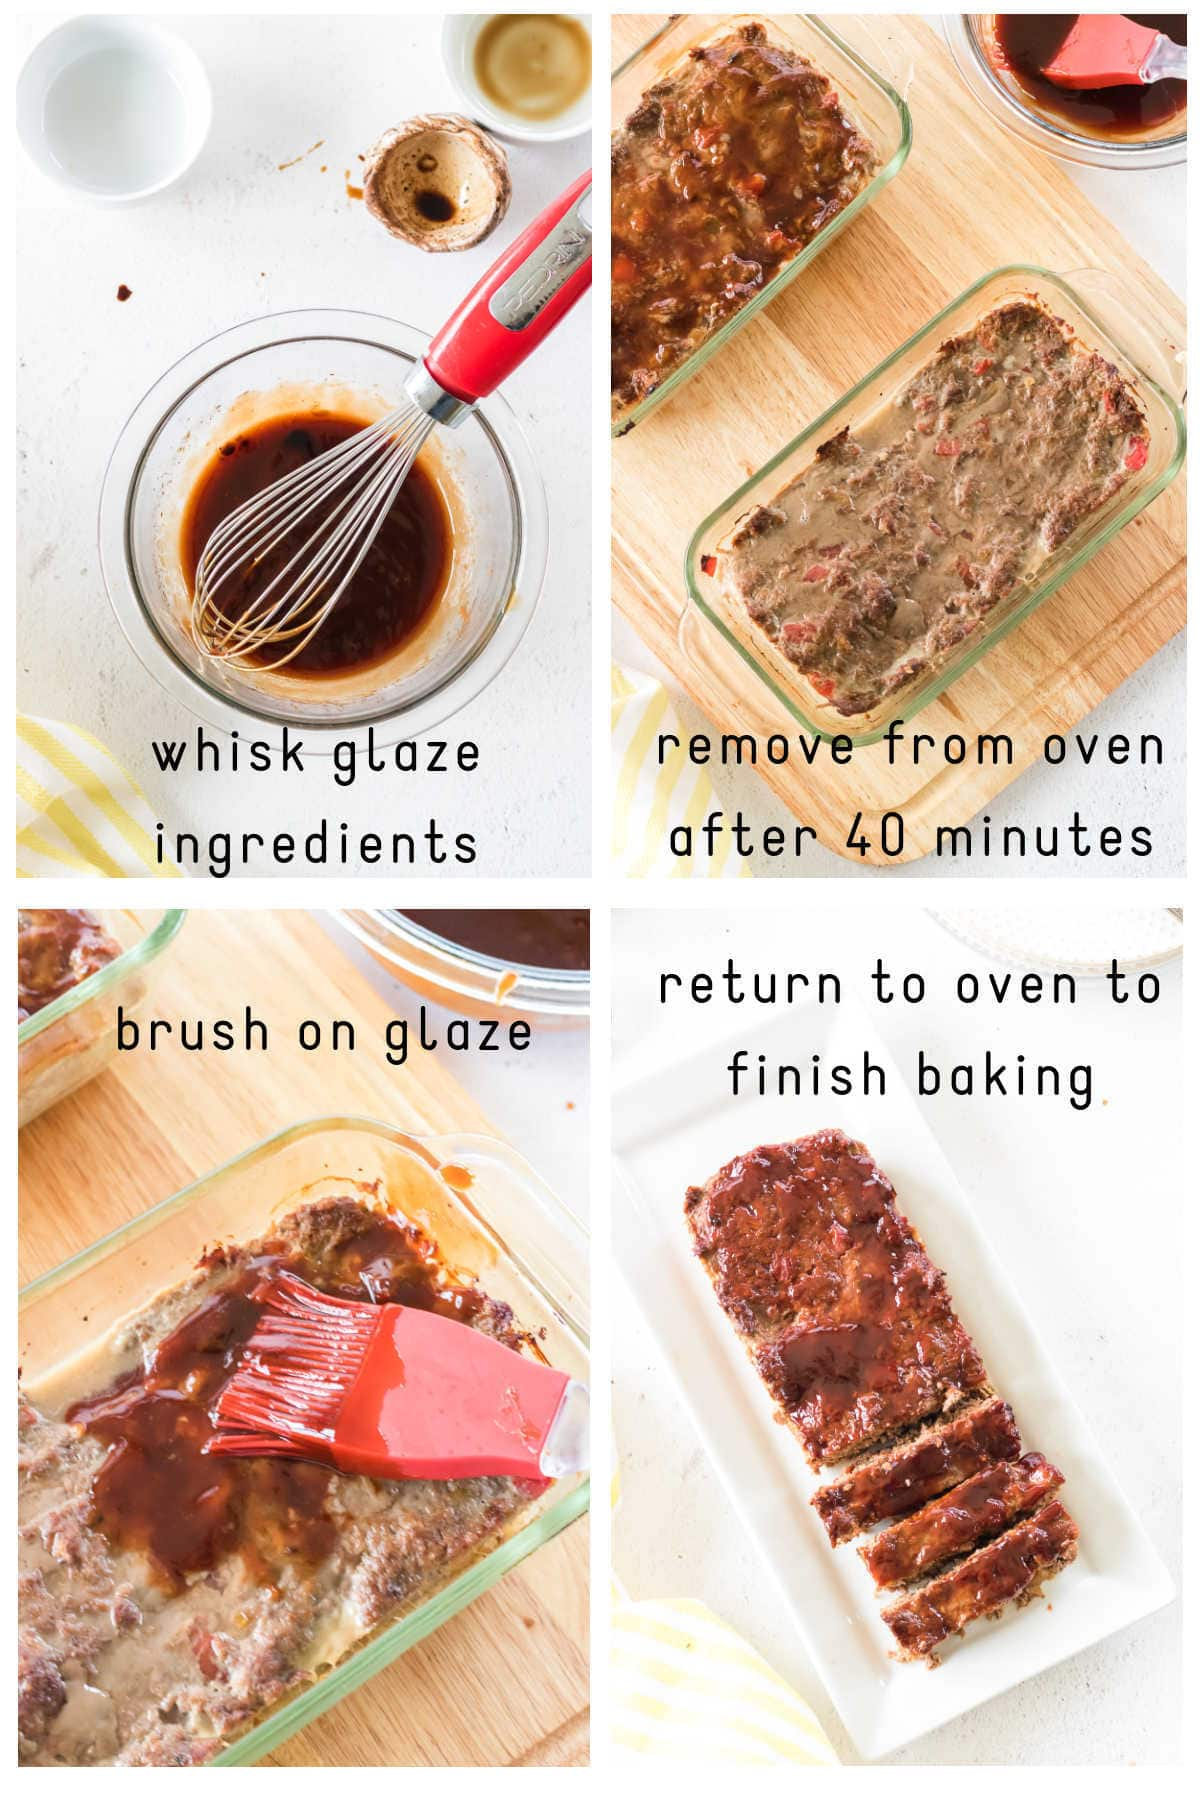 Step by step images for making the glaze and glazing the meatloaf.